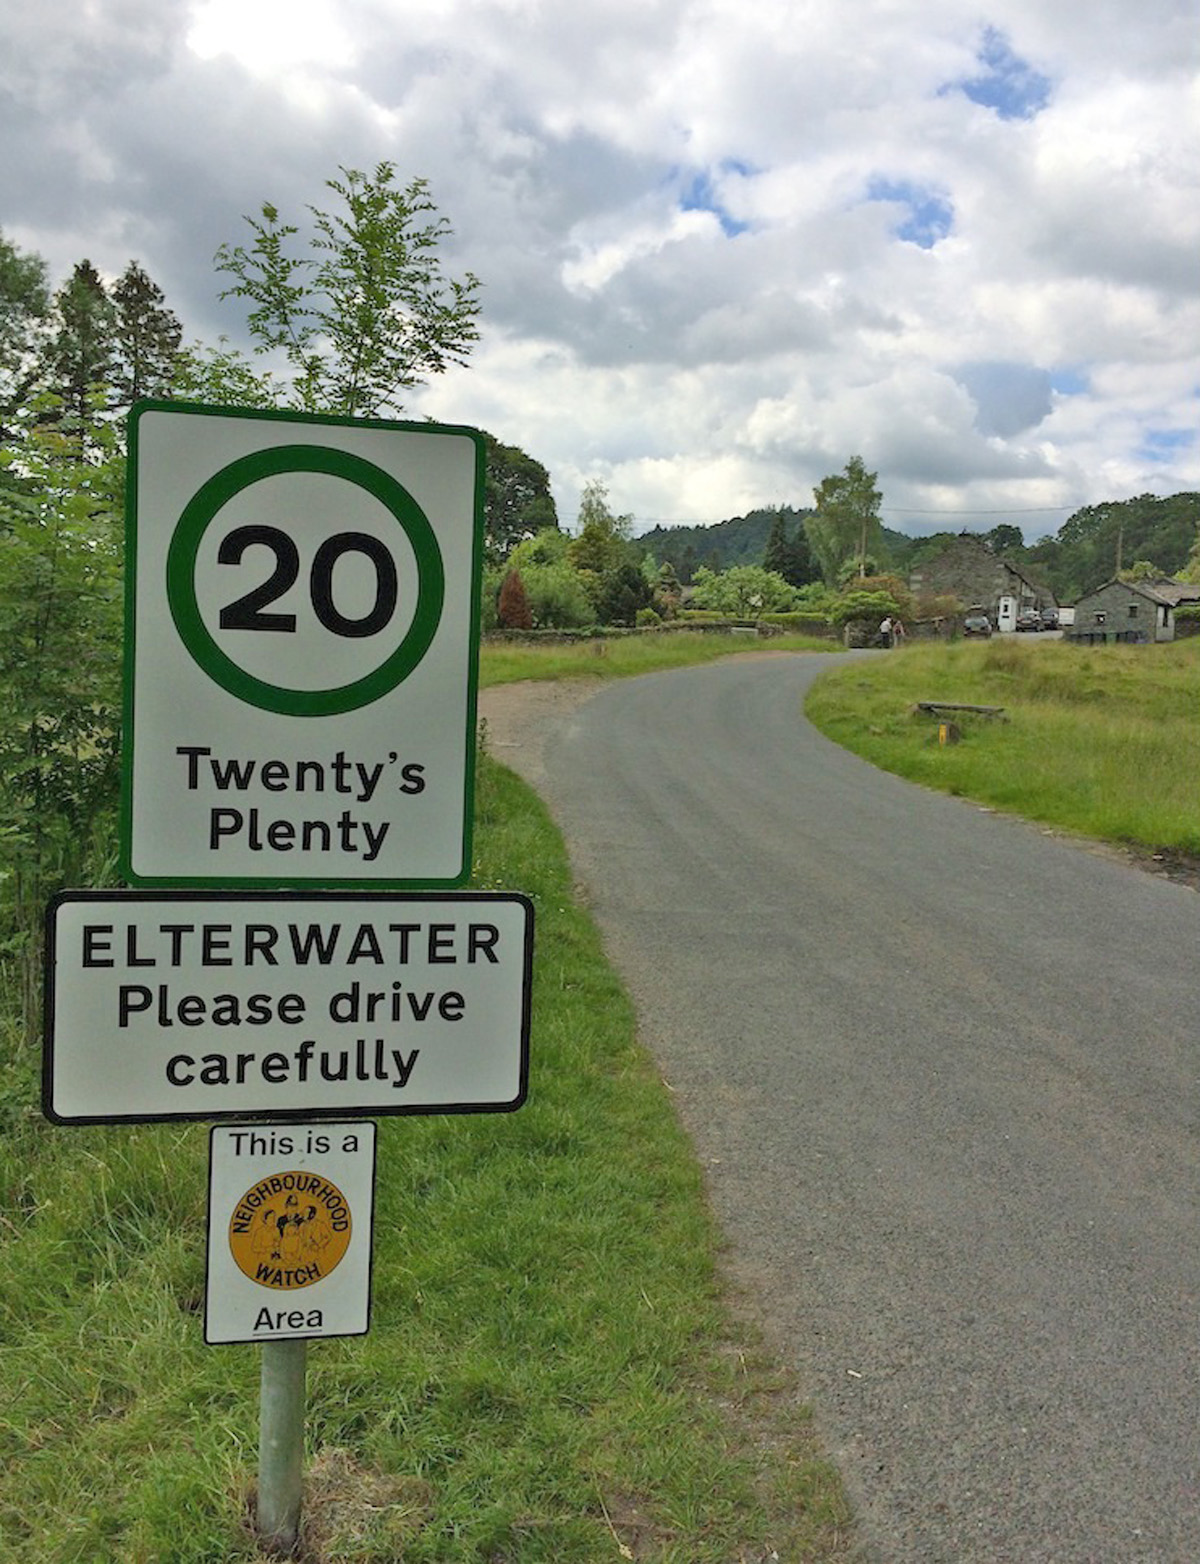 The new signs at Elterwater